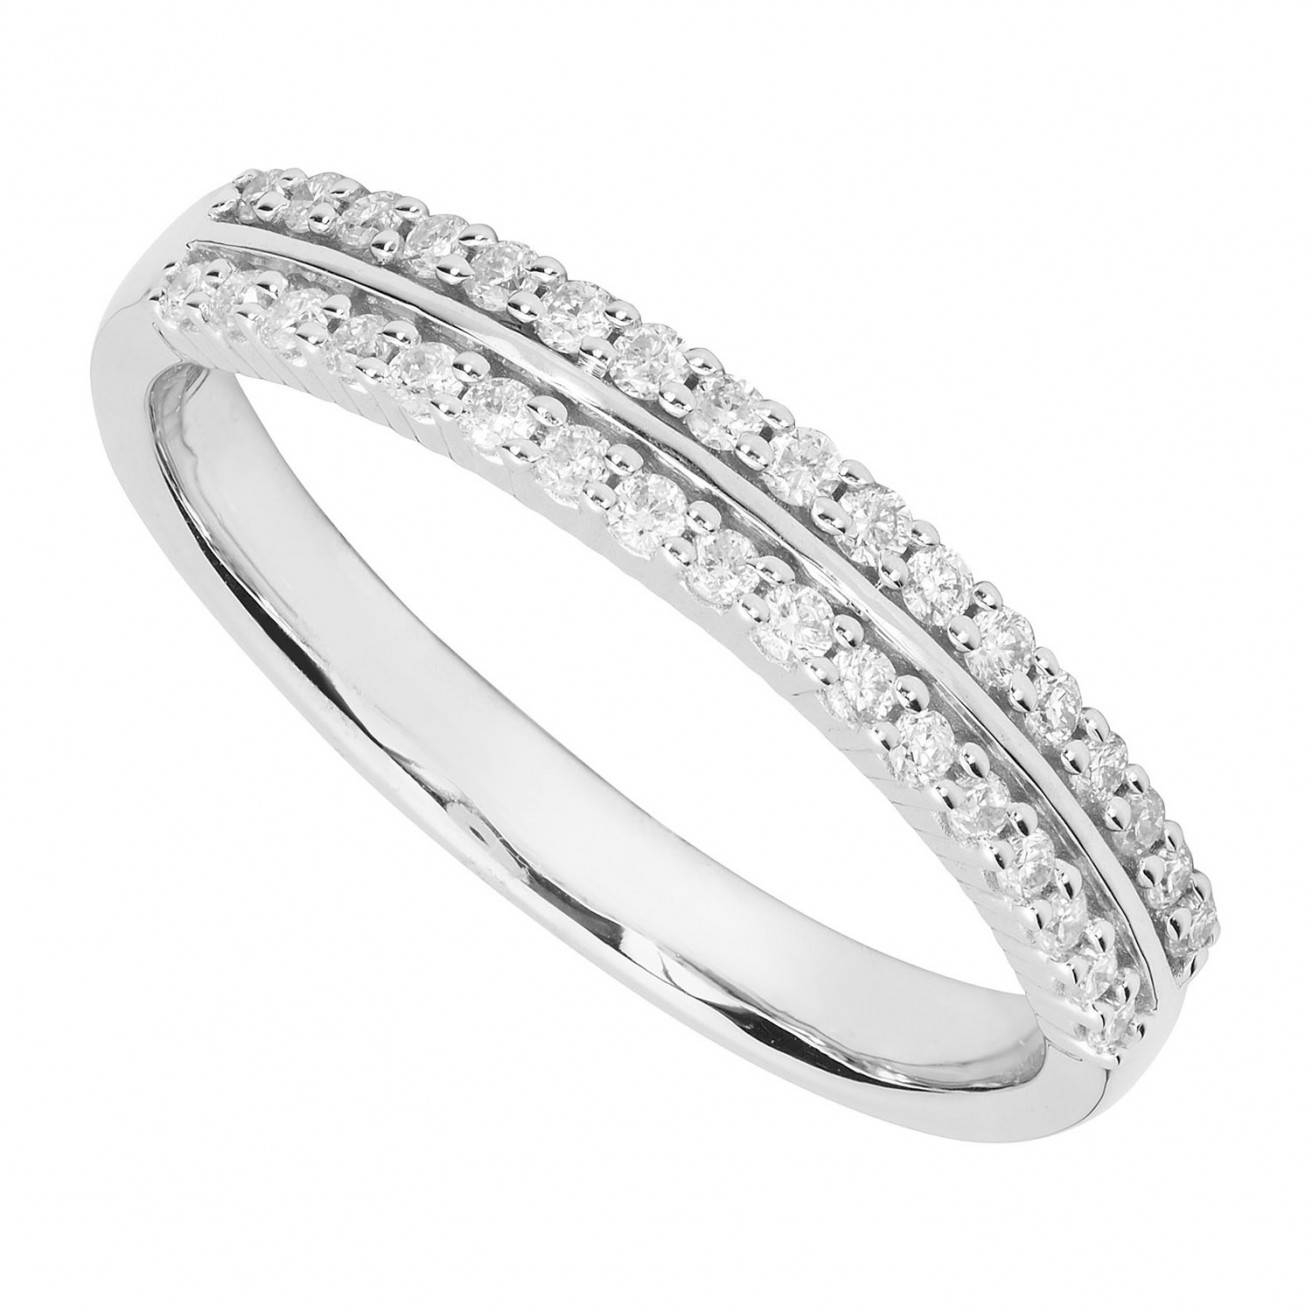 Wedding Rings : Wedding Ring With 4 Diamonds Wedding Rings With Intended For 4 Diamond Wedding Bands (View 15 of 15)